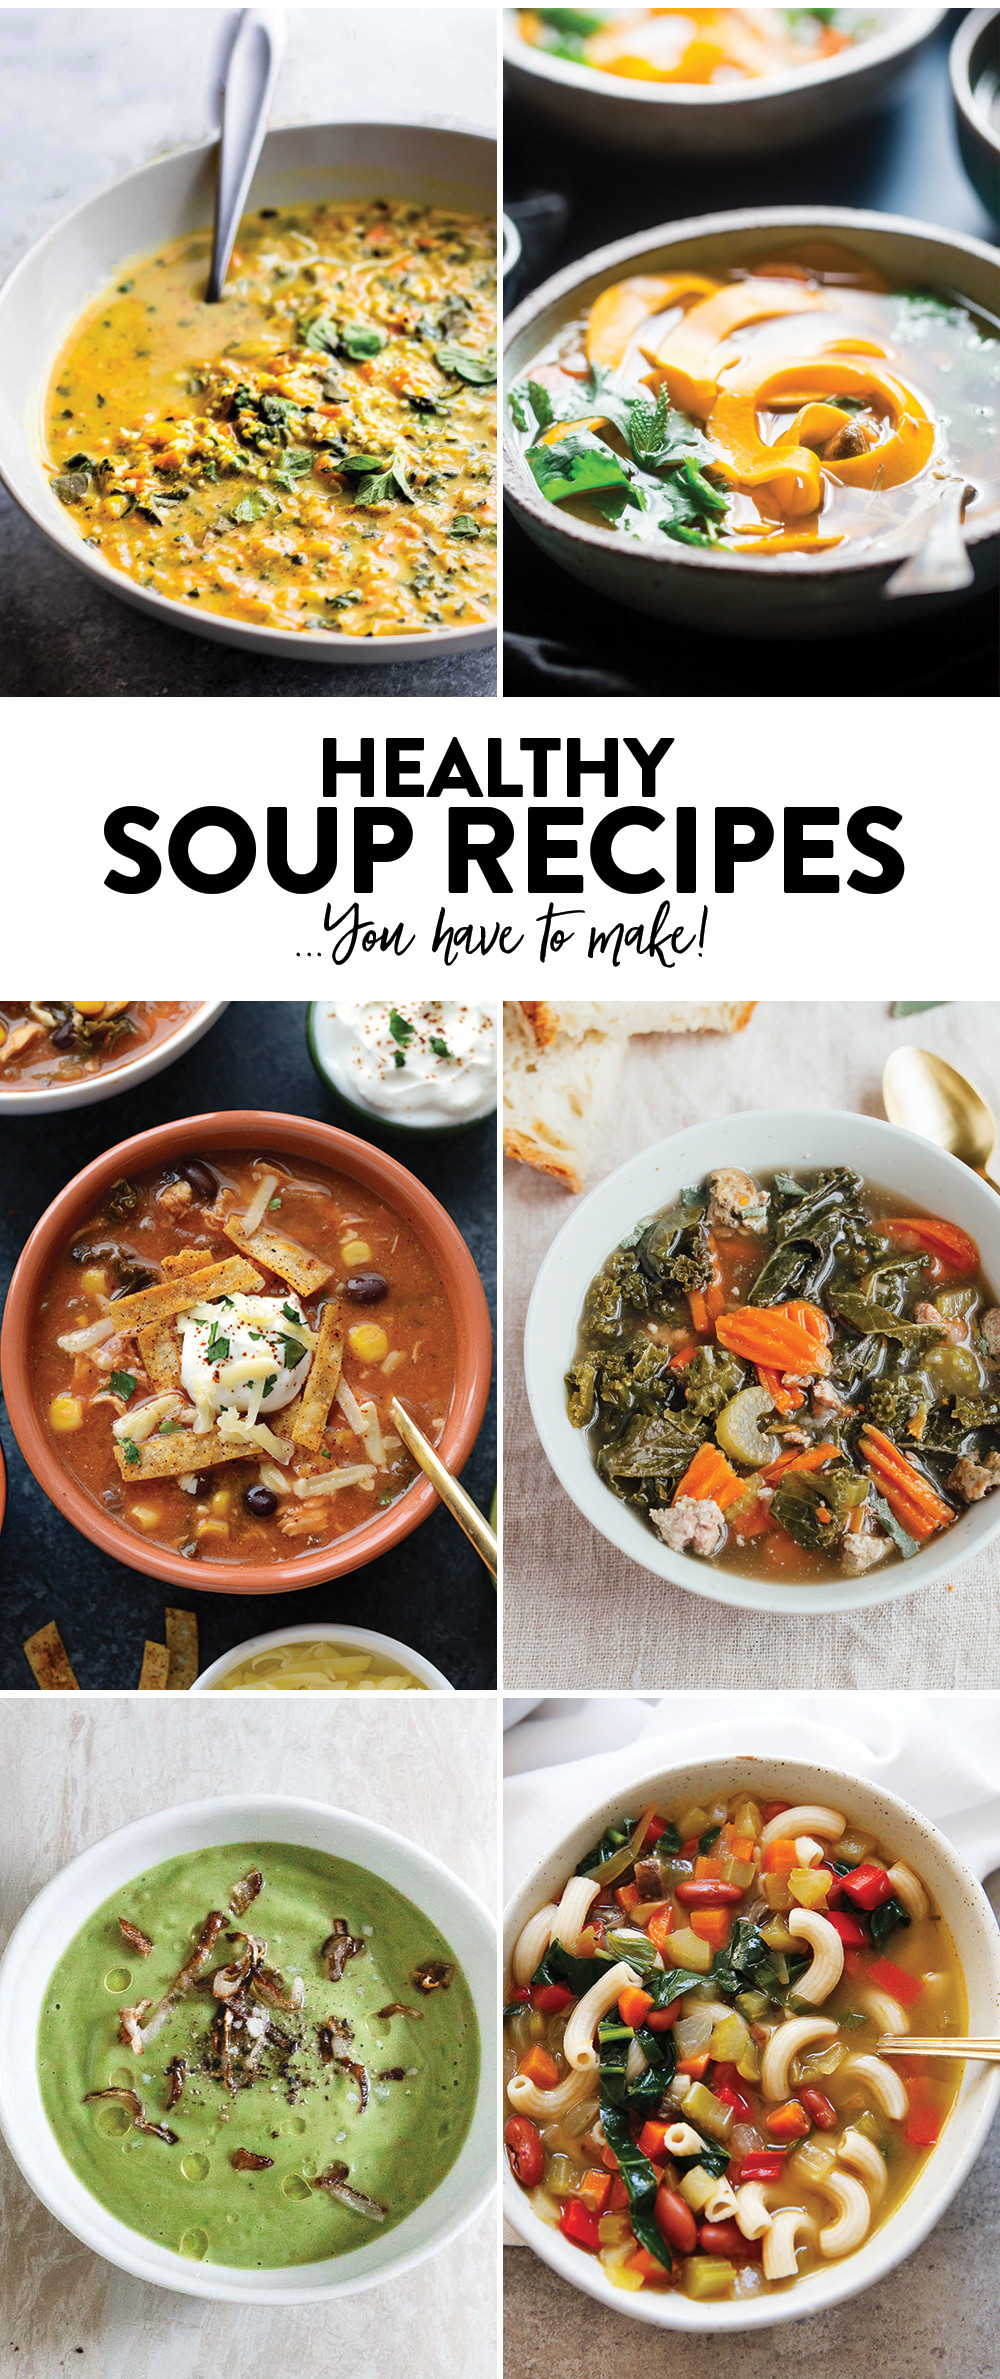 Healthy soups to Make the Best Curried Cauliflower Rice Kale soup Paleo Vegan